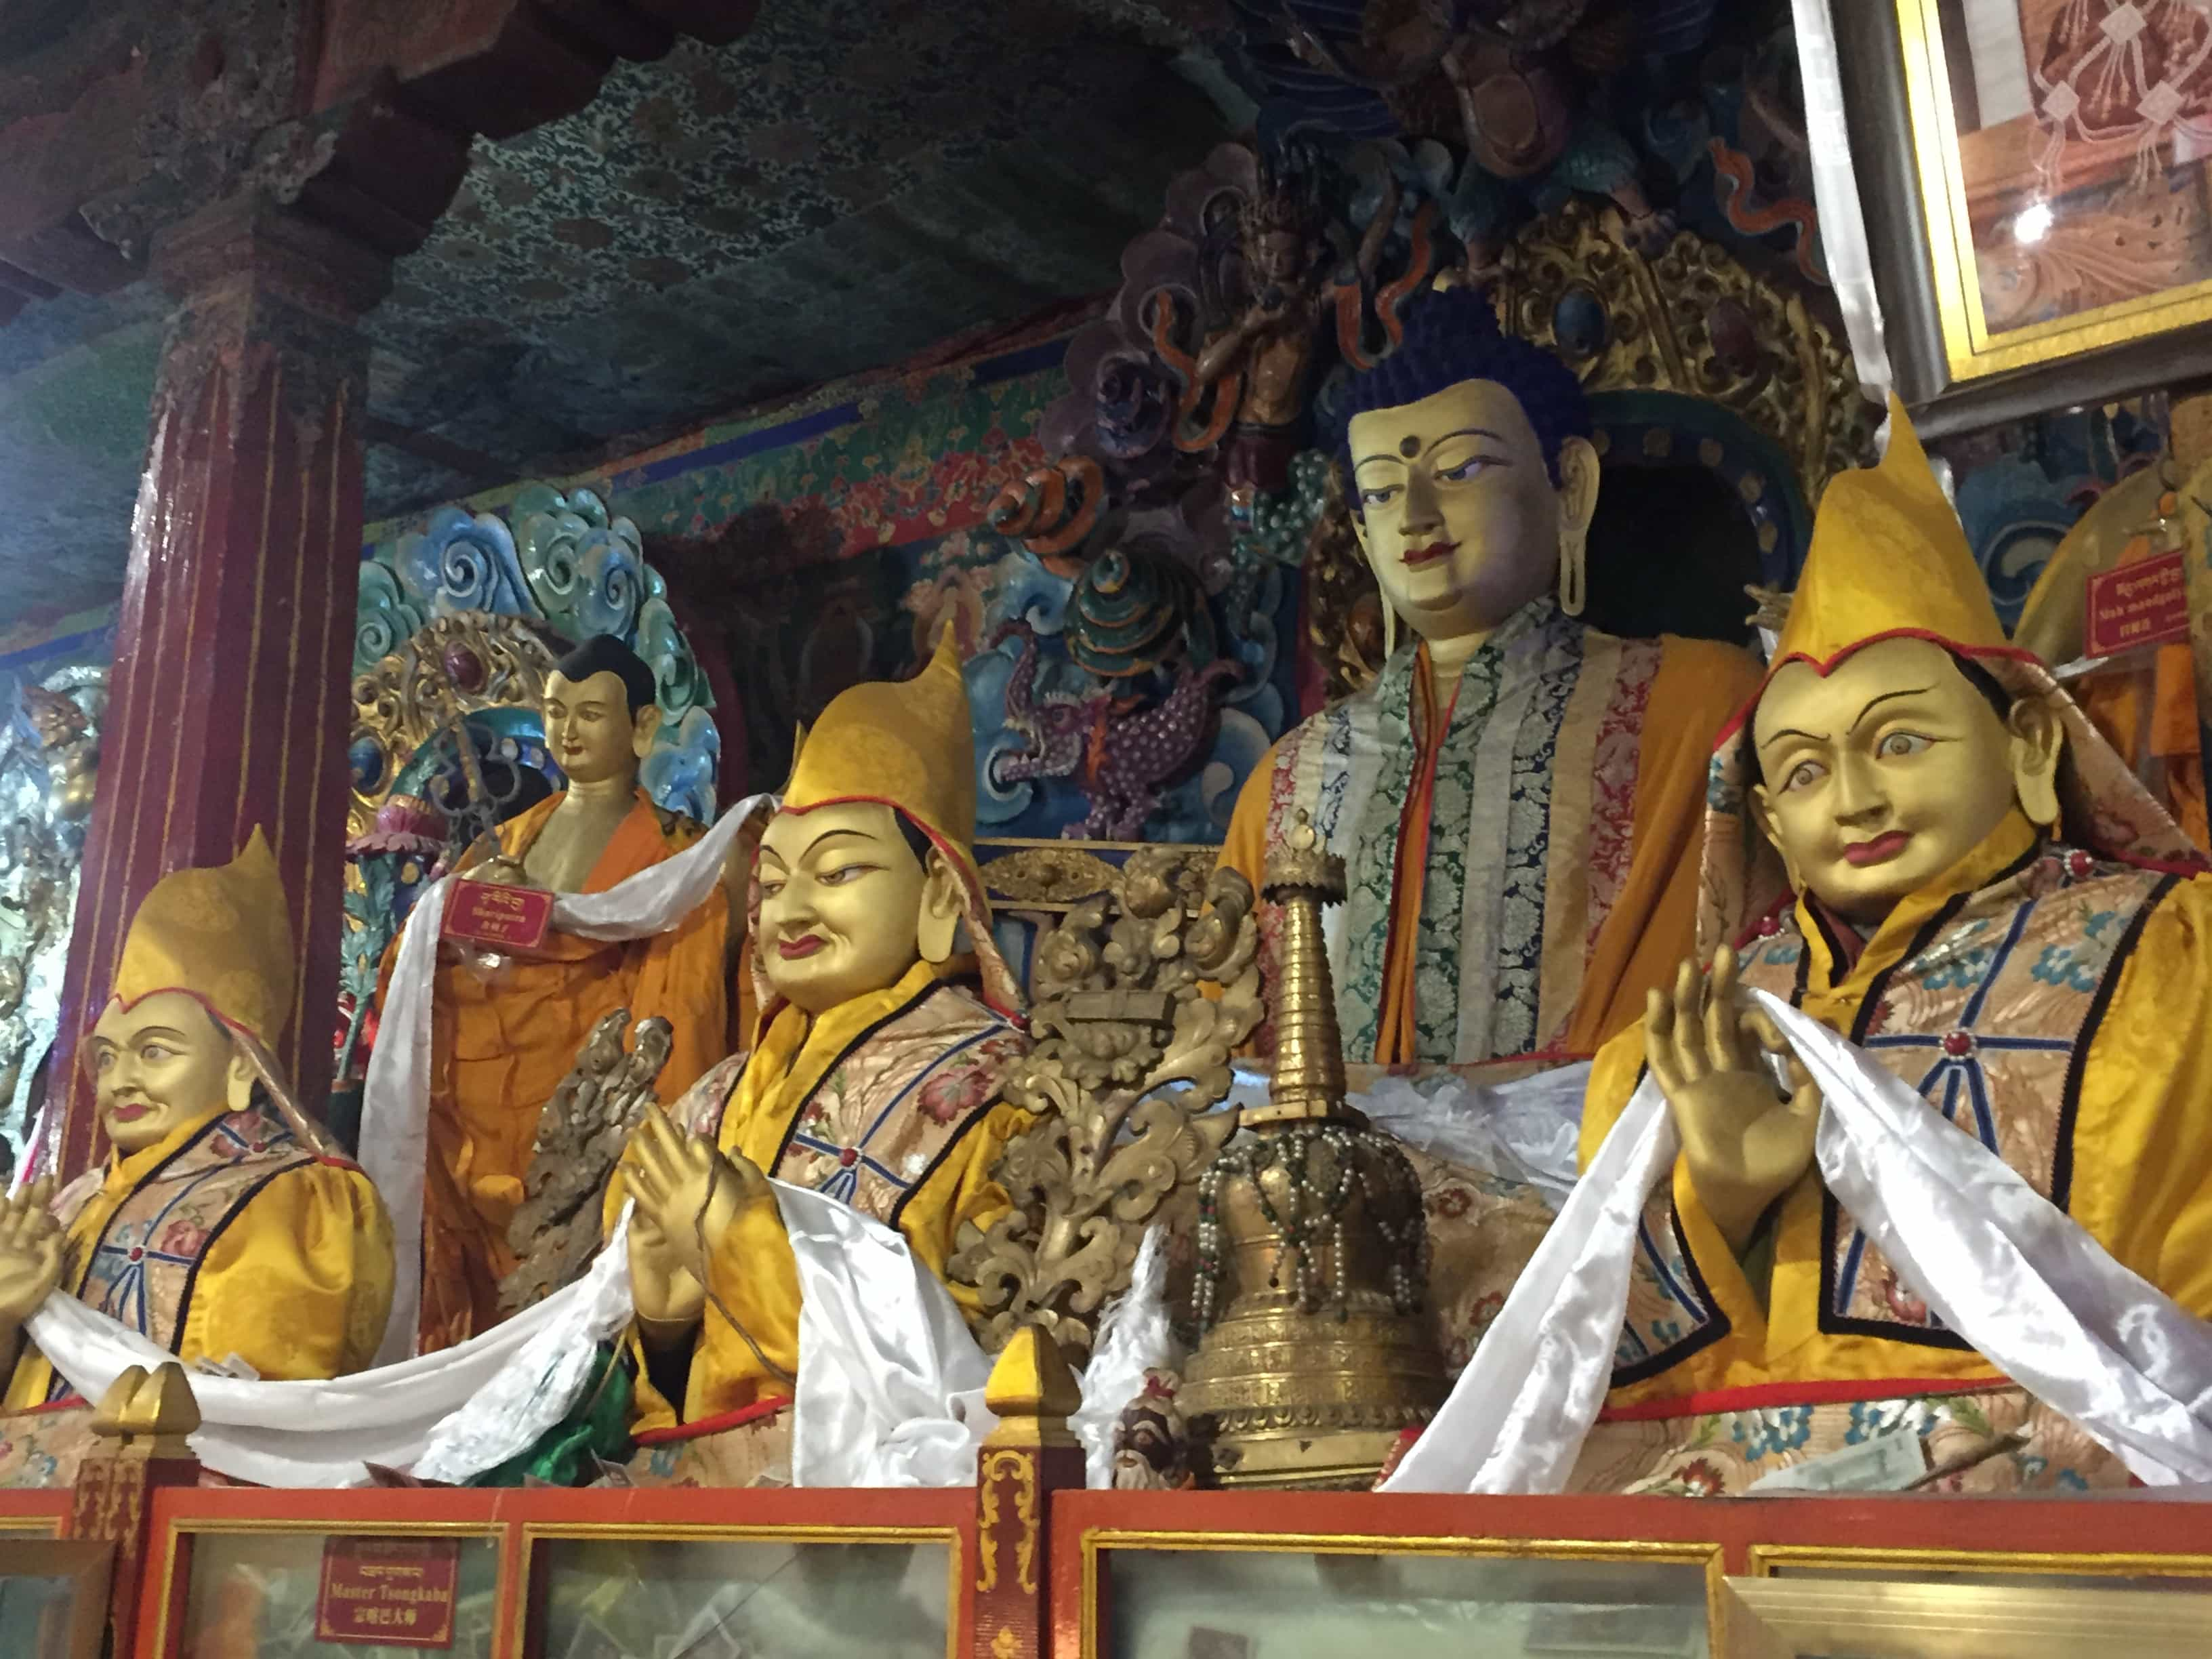 Statues of Tsongkhapa(in the middle) and his two disciples